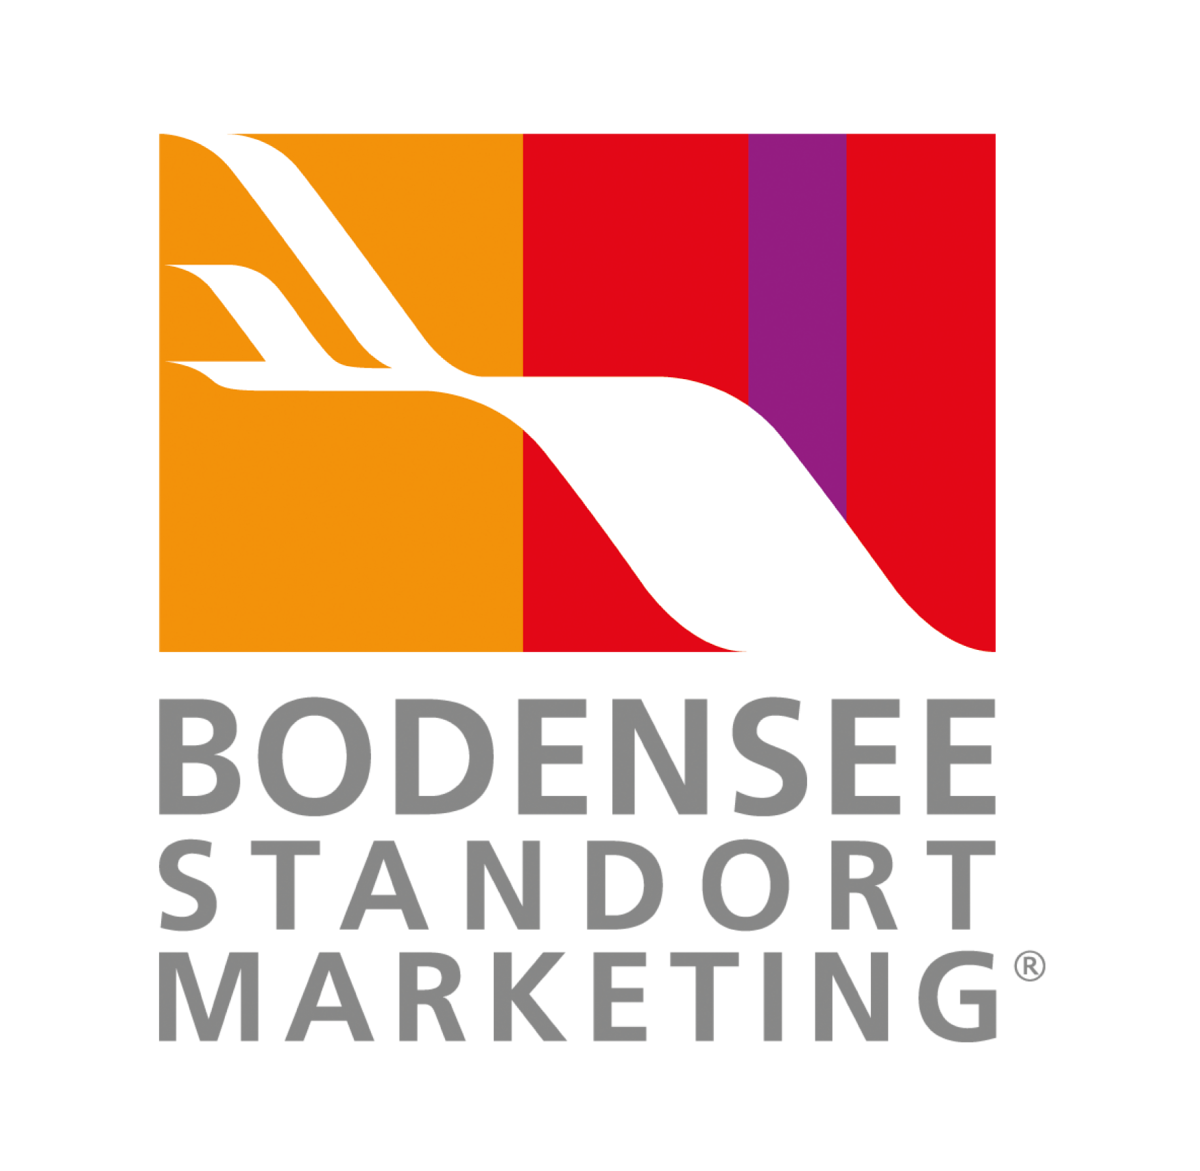 Bodensee Standort Marketing